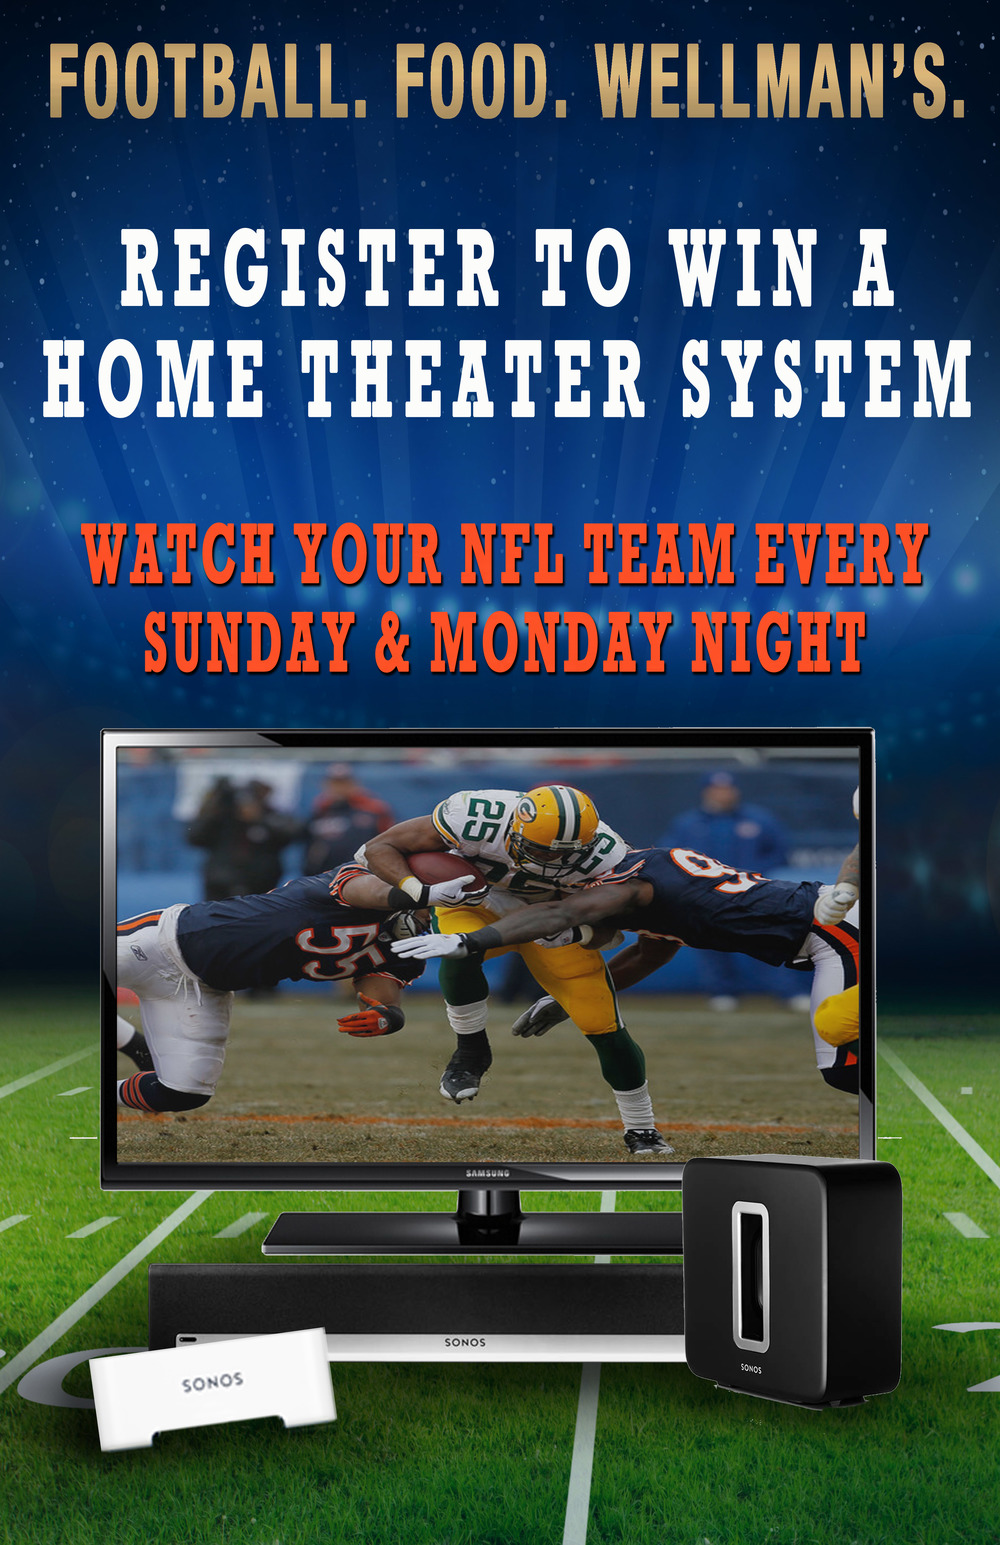 We are GIVING AWAY A HOME THEATER SYSTEM VALUED AT OVER $2800 and weekly drawings for a $50 gift card! Click the poster to learn how you can win!